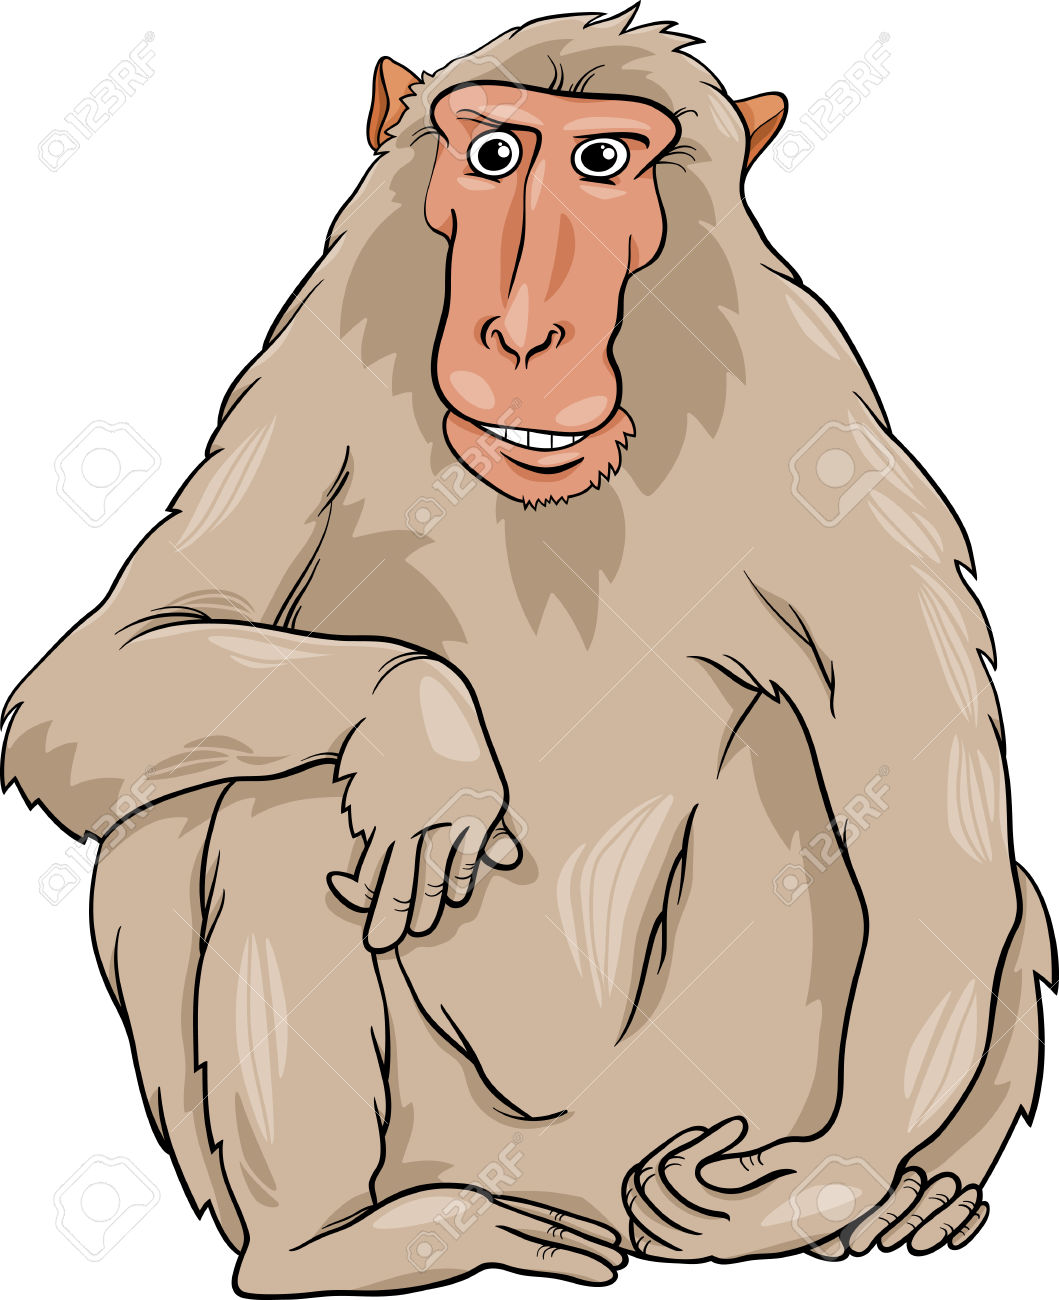 Macaque clipart #19, Download drawings